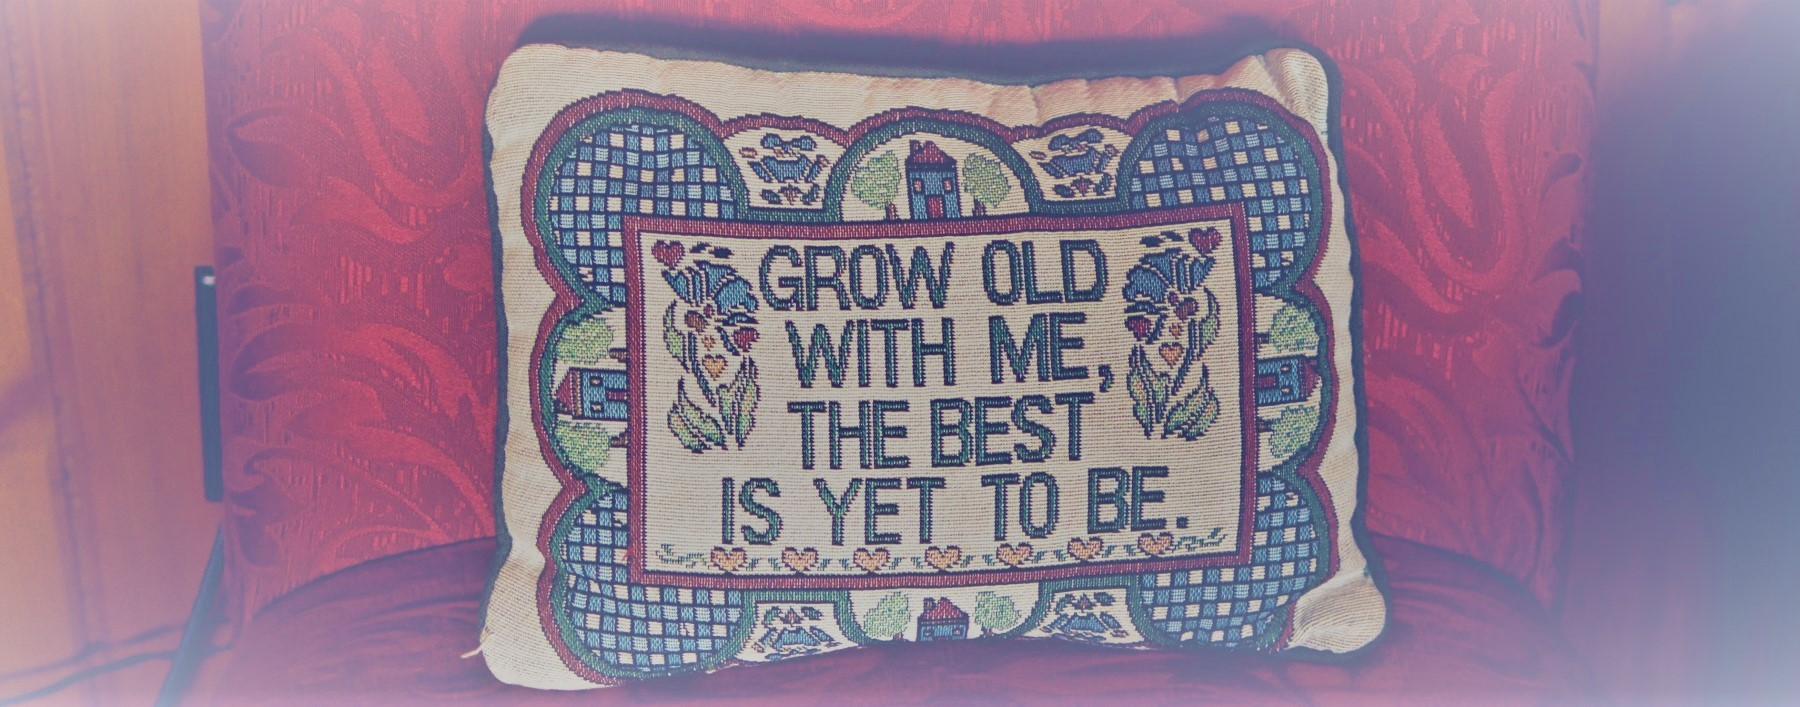 Grow old with me the best is yet to be.